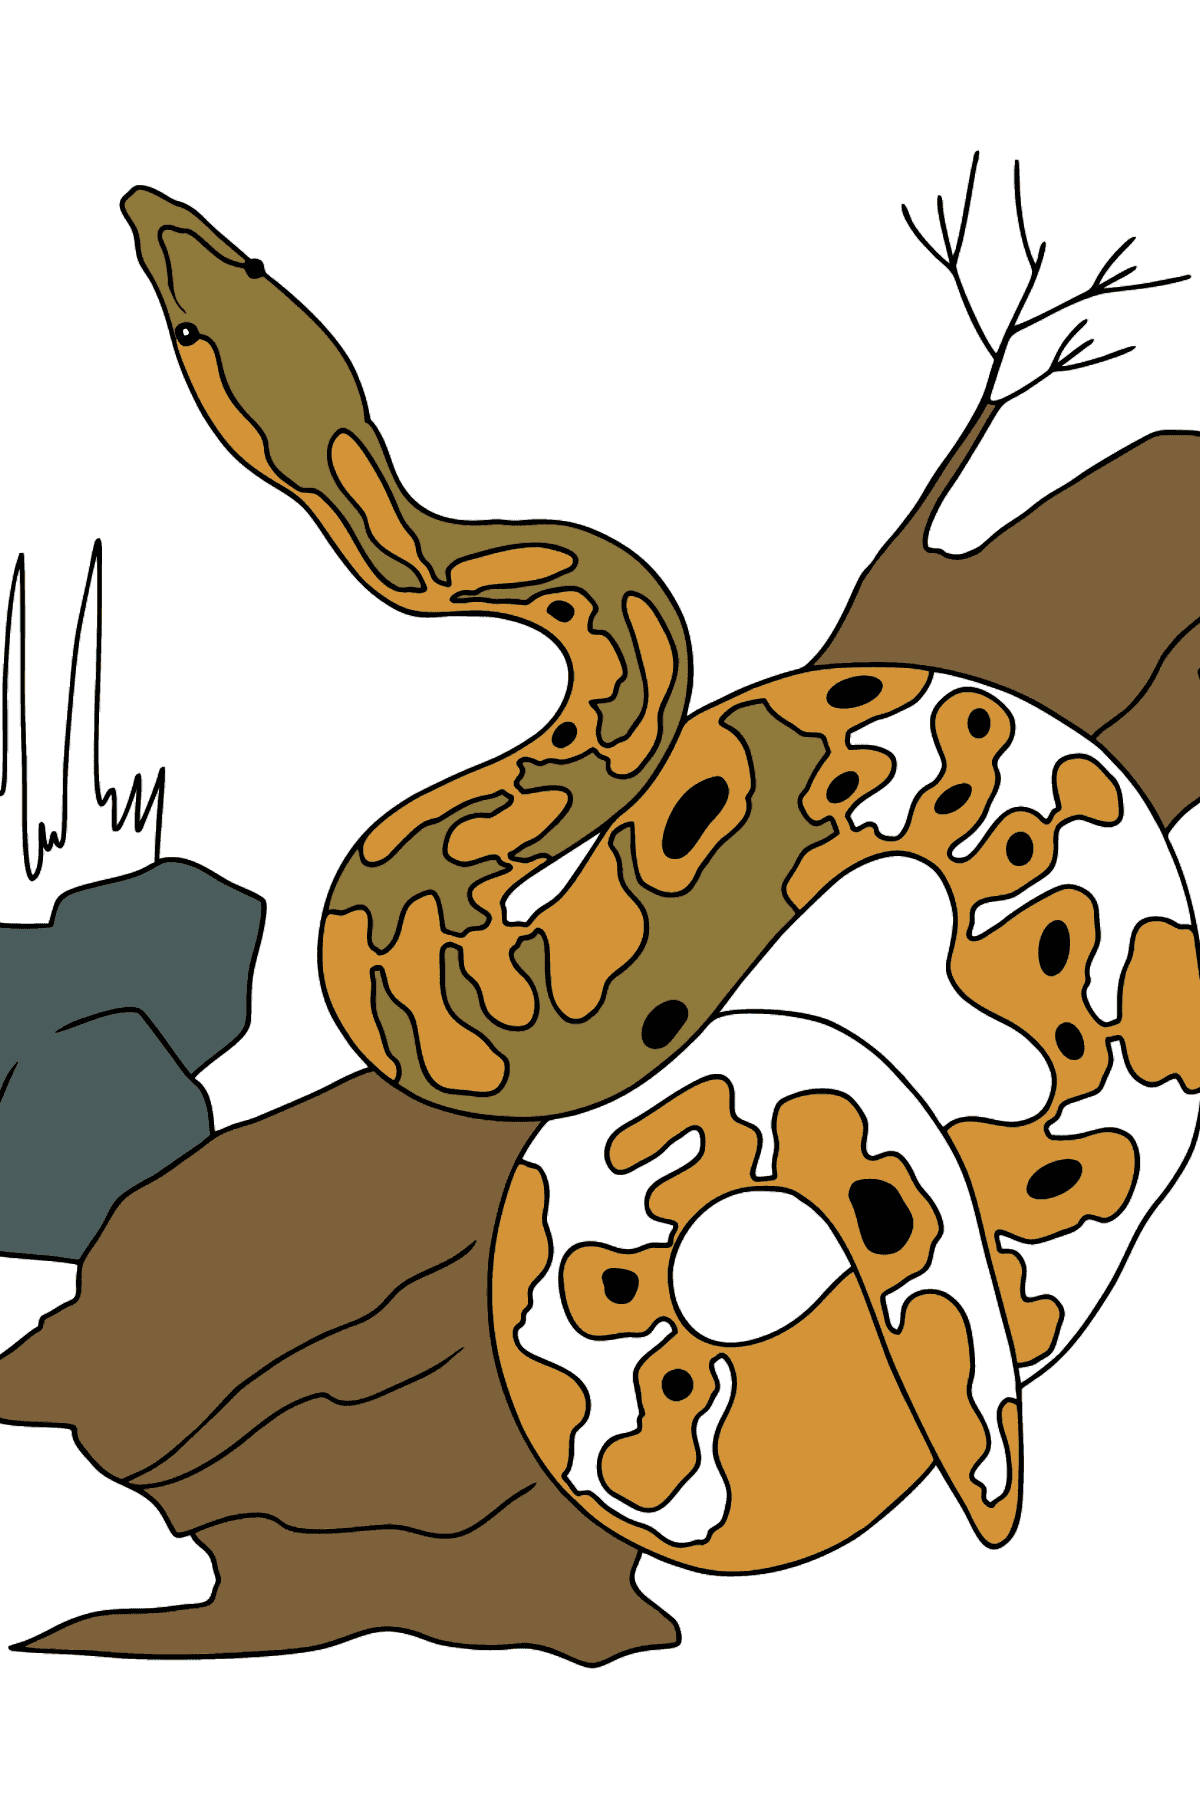 A Snake on the Hunt Coloring Page - Coloring Pages for Kids